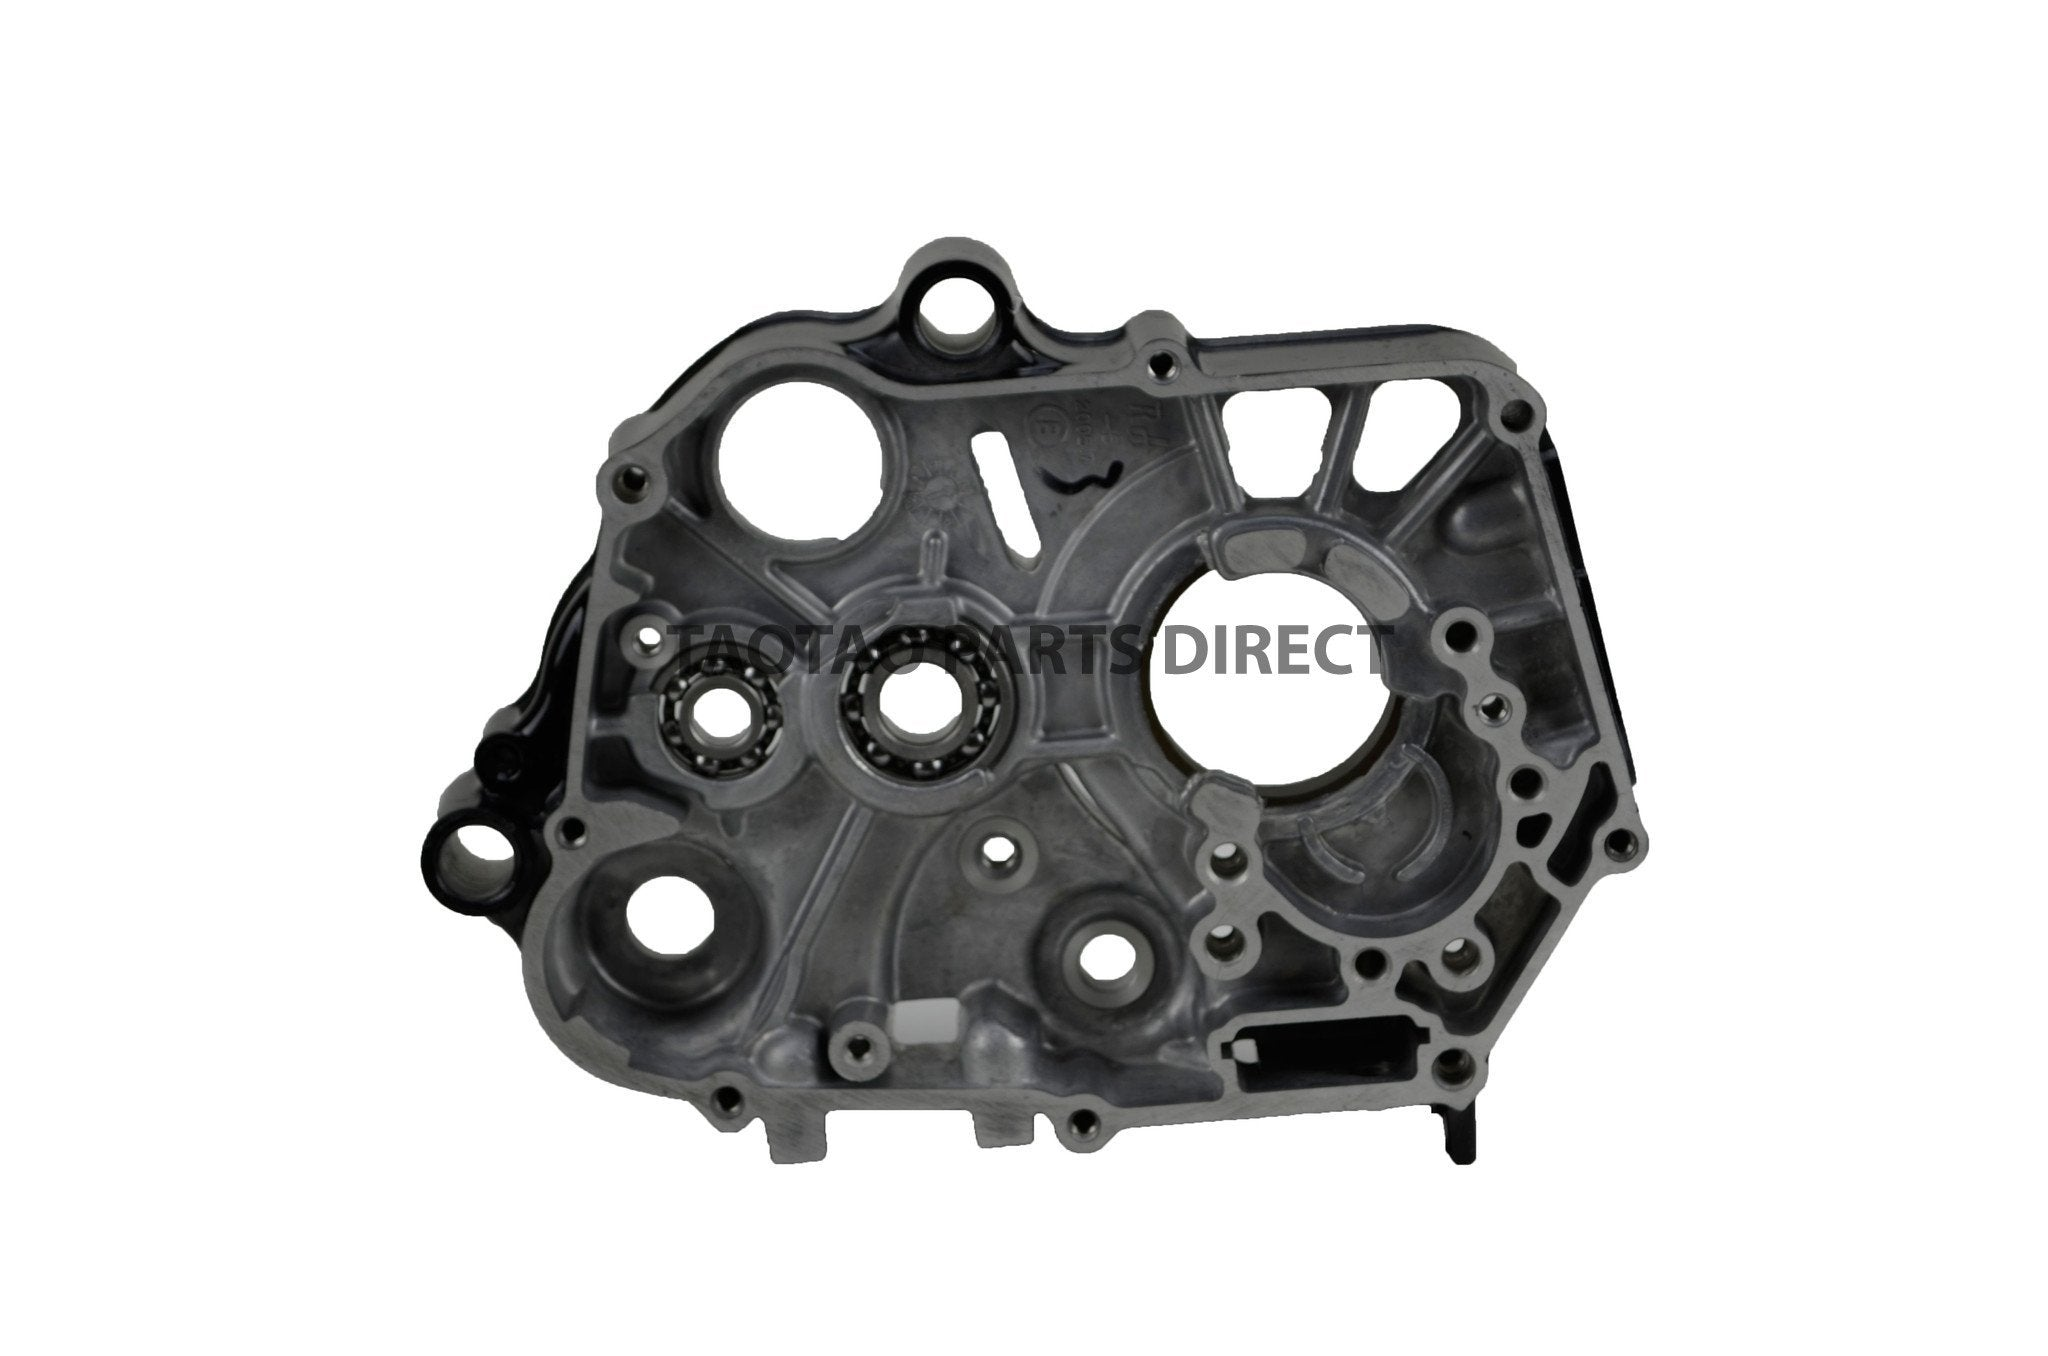 125cc Dirtbike Right Crankcase - TaoTaoPartsDirect.com